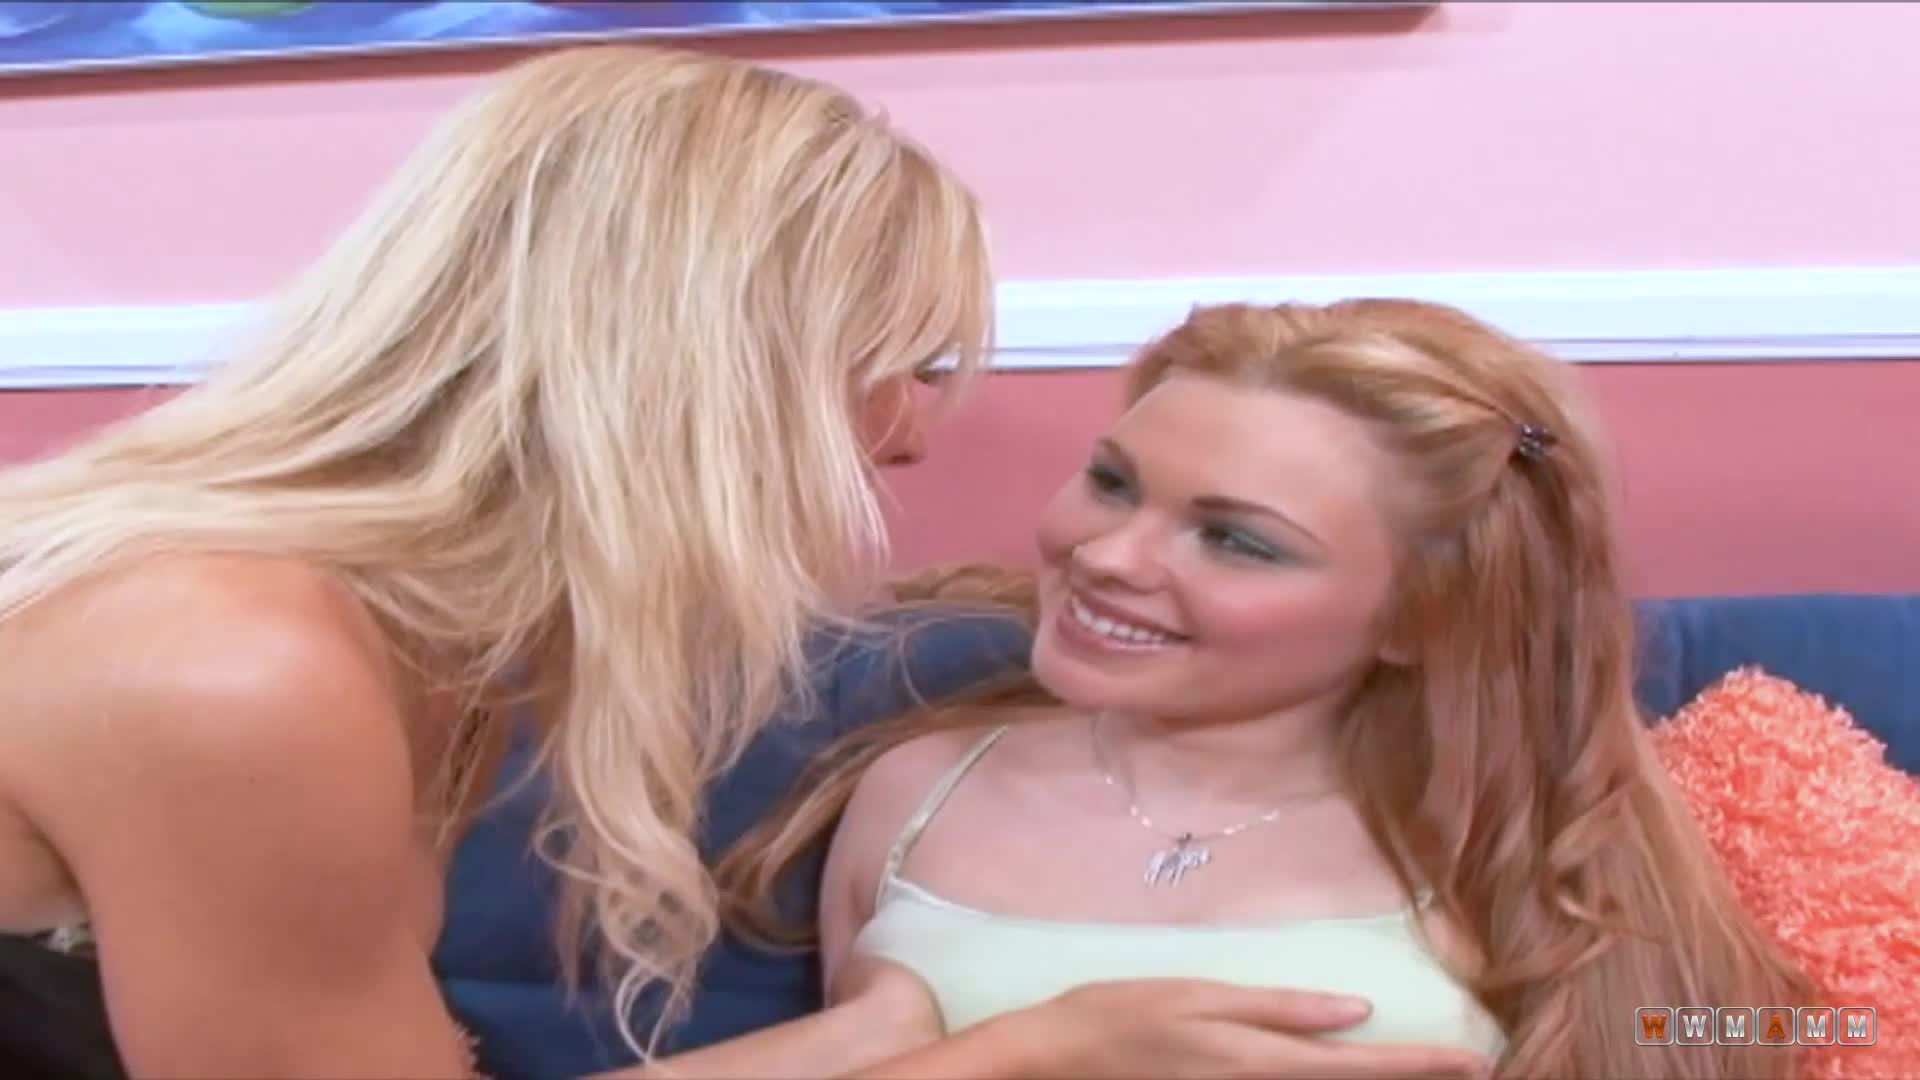 Hot babes Jayme Langford and Sabrina Rose are feeling very horny